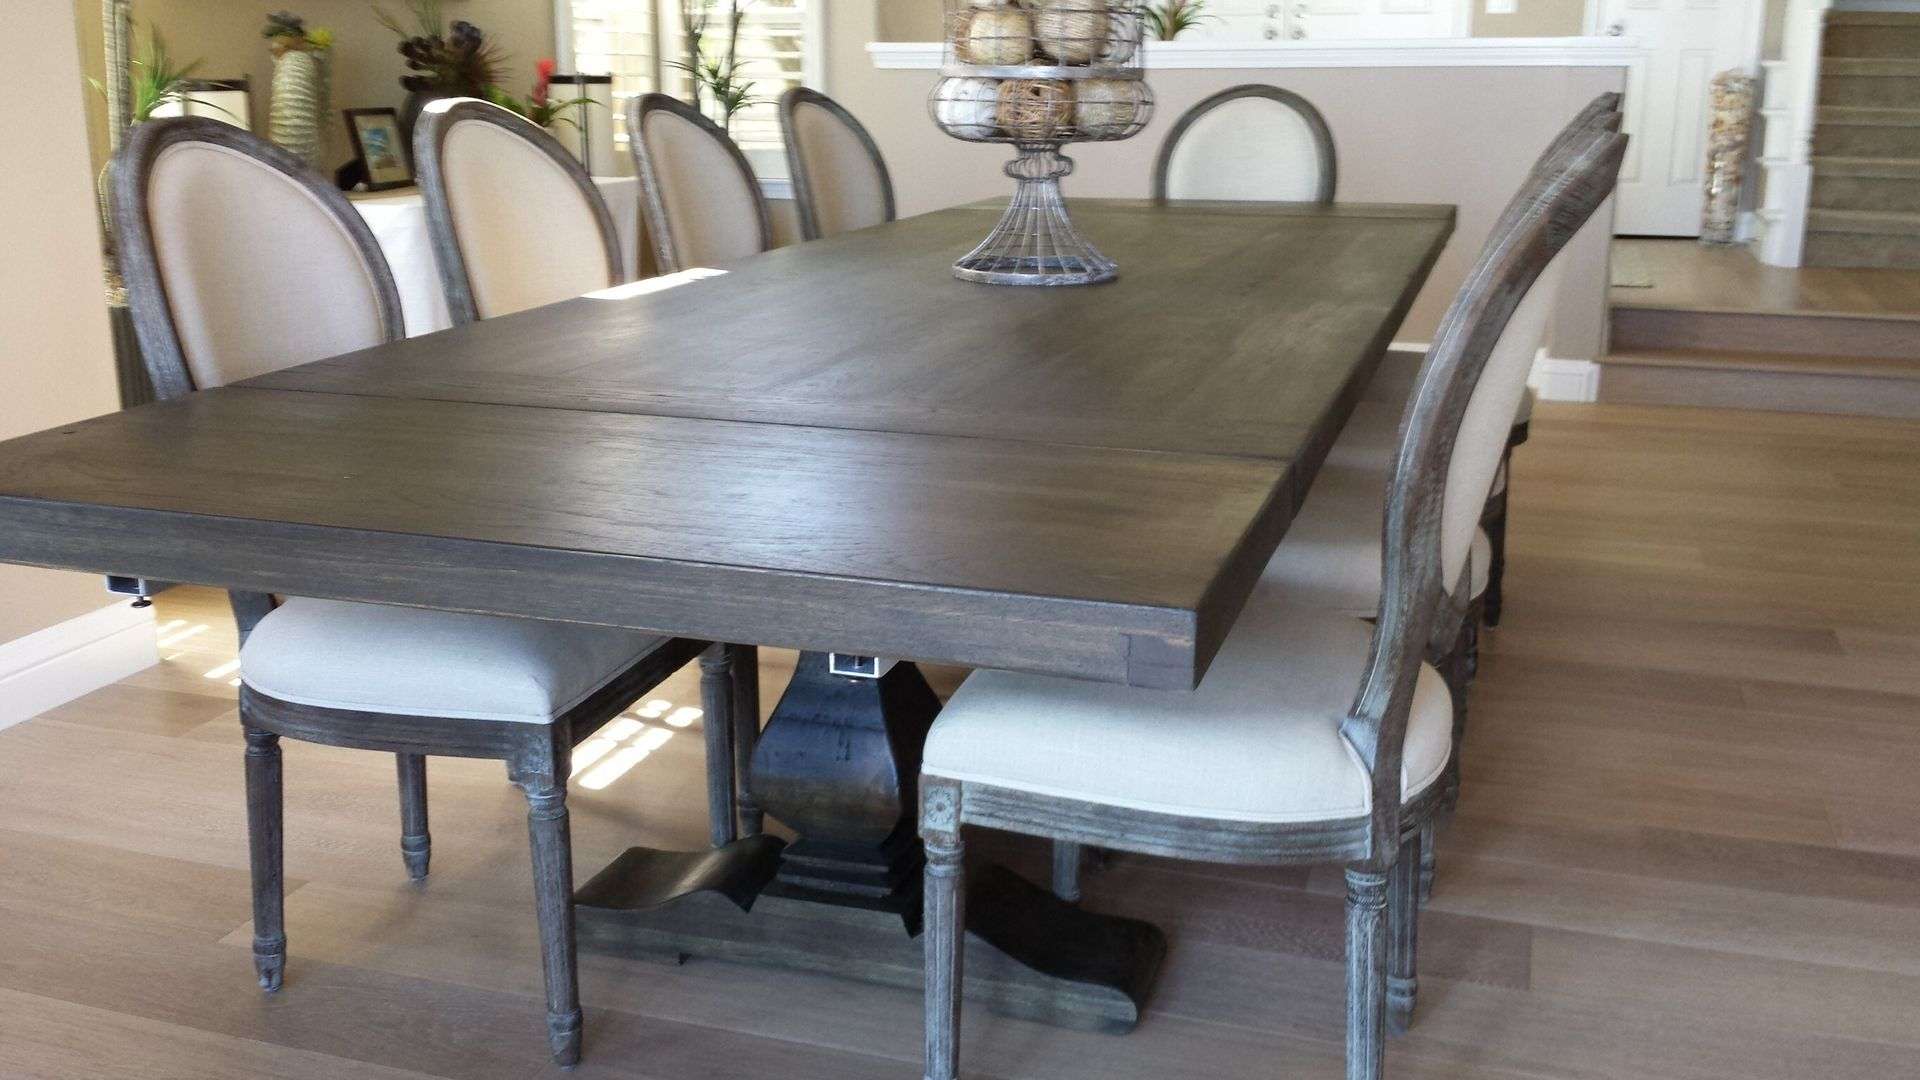 Tables rustic solid wood trestle pedestal base harvest dining table - Pecan Trestle Dining Table By Jeff Santini